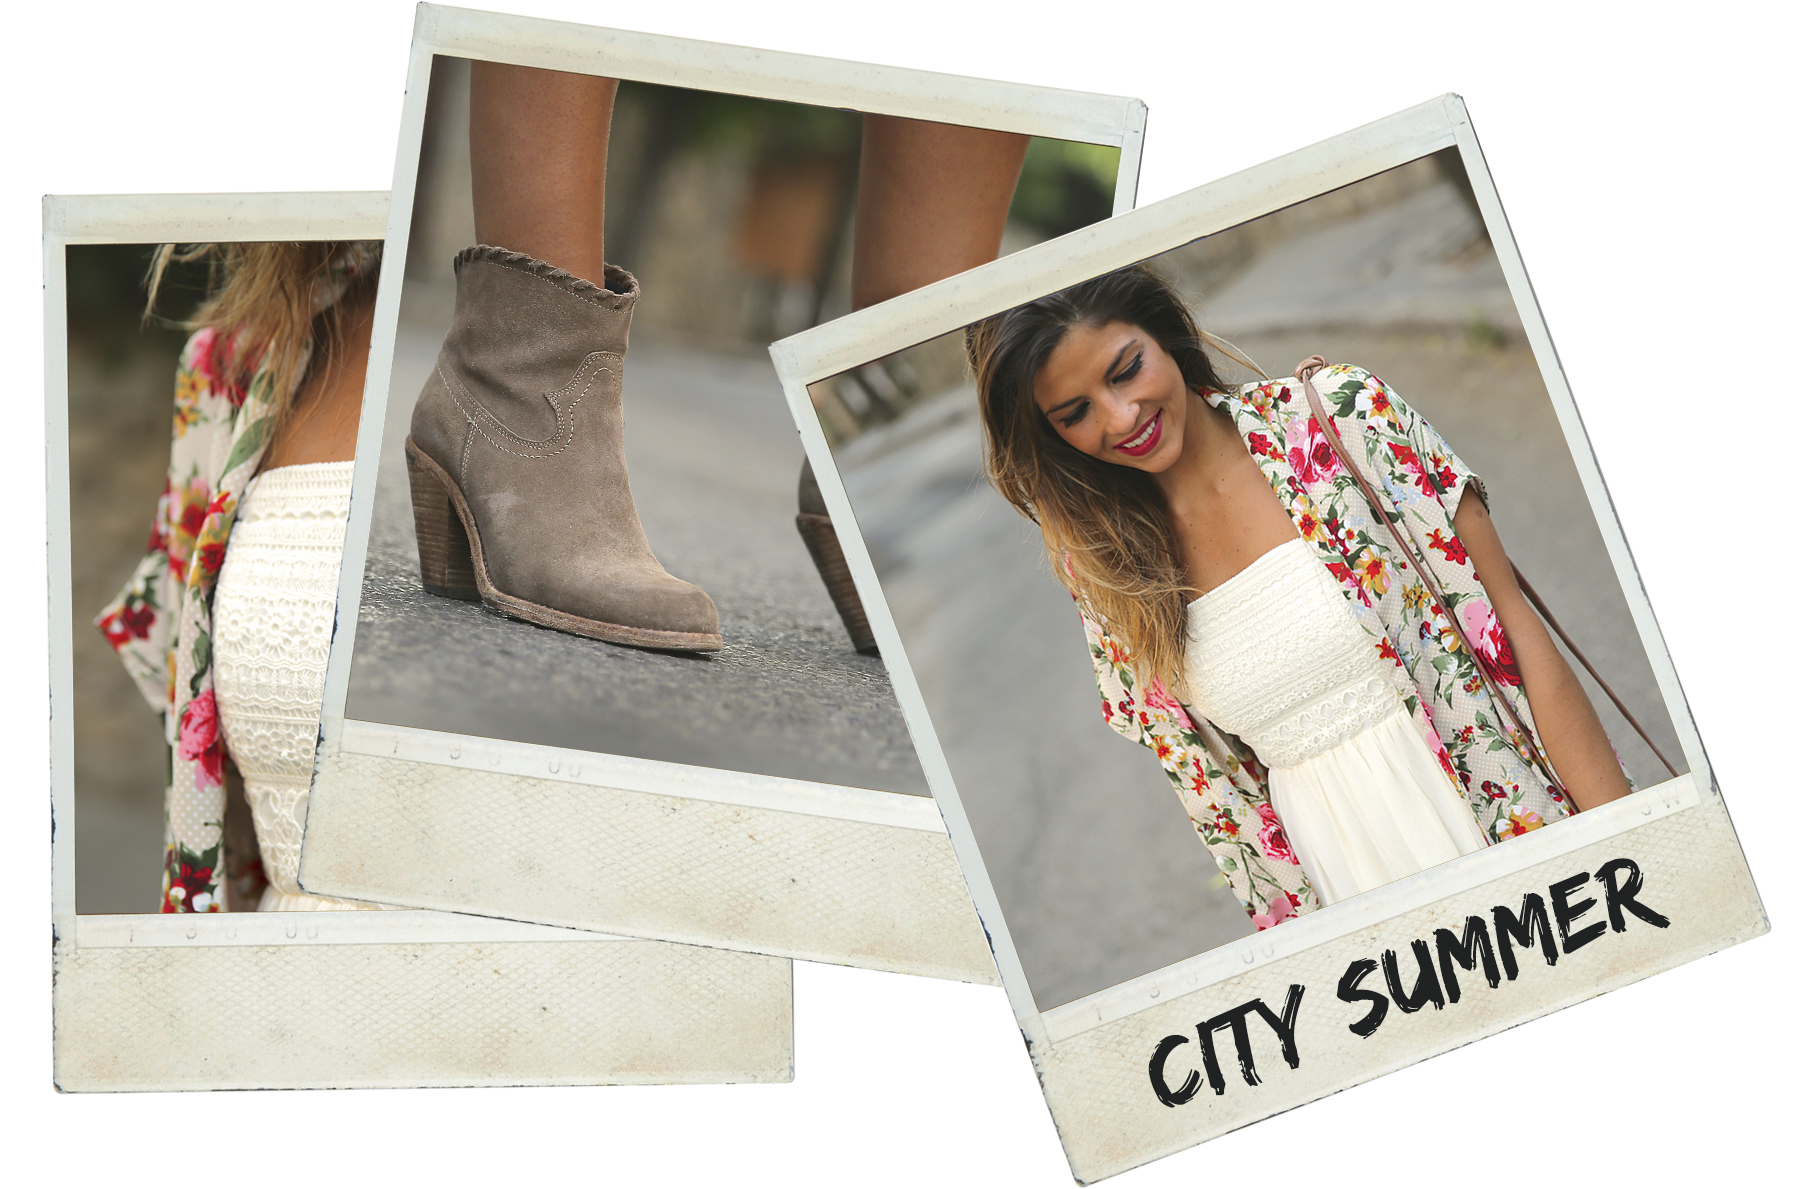 trendy_taste-look-outfit-street_style-ootd-blog-blogger-fashion_spain-moda_españa-kimono-vestido_blanco-vestido_verano-playa_beach-dress-cowboy_booties-botines_camperos-polaroid